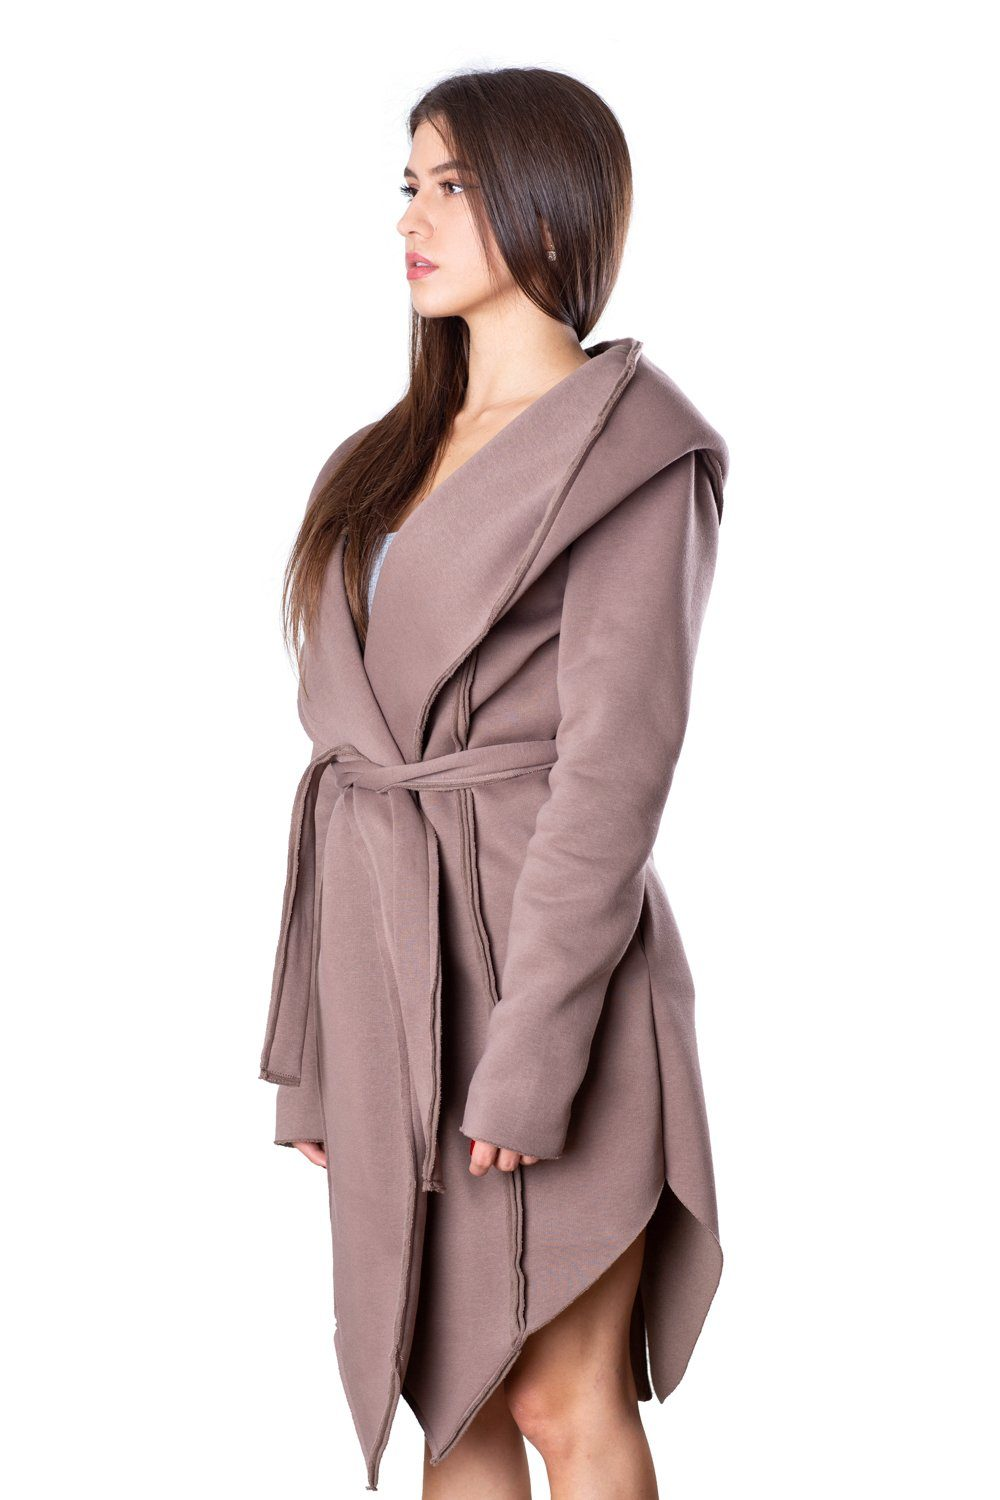 TheG Woman Designer Cardigan 2.0 // chocolate